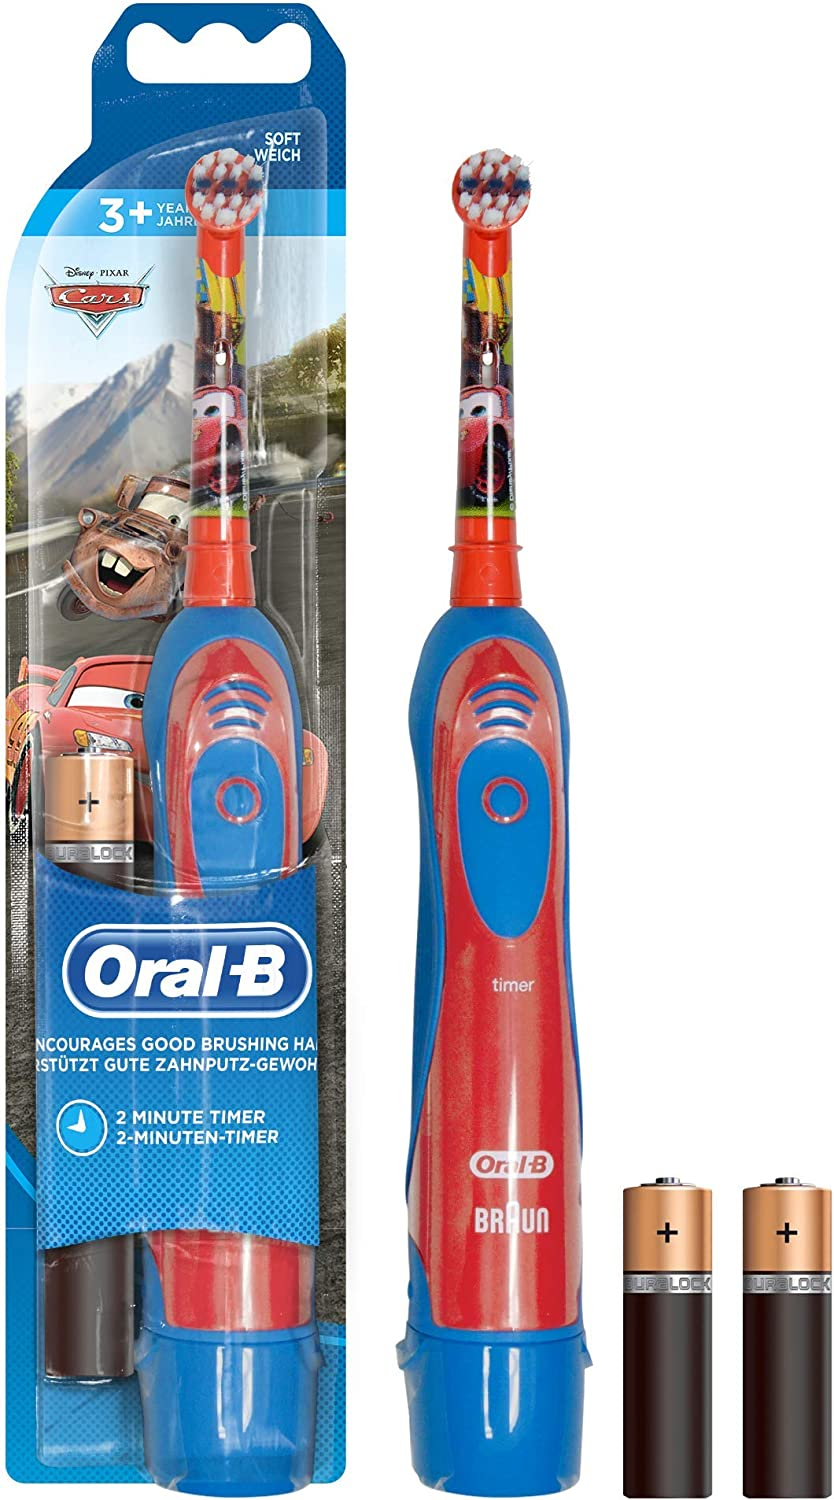 Oral B Stages Power Electric Kinderzahnburste Disney Design Mit Batterie Sortiert Amazon De Drogerie Korperpflege